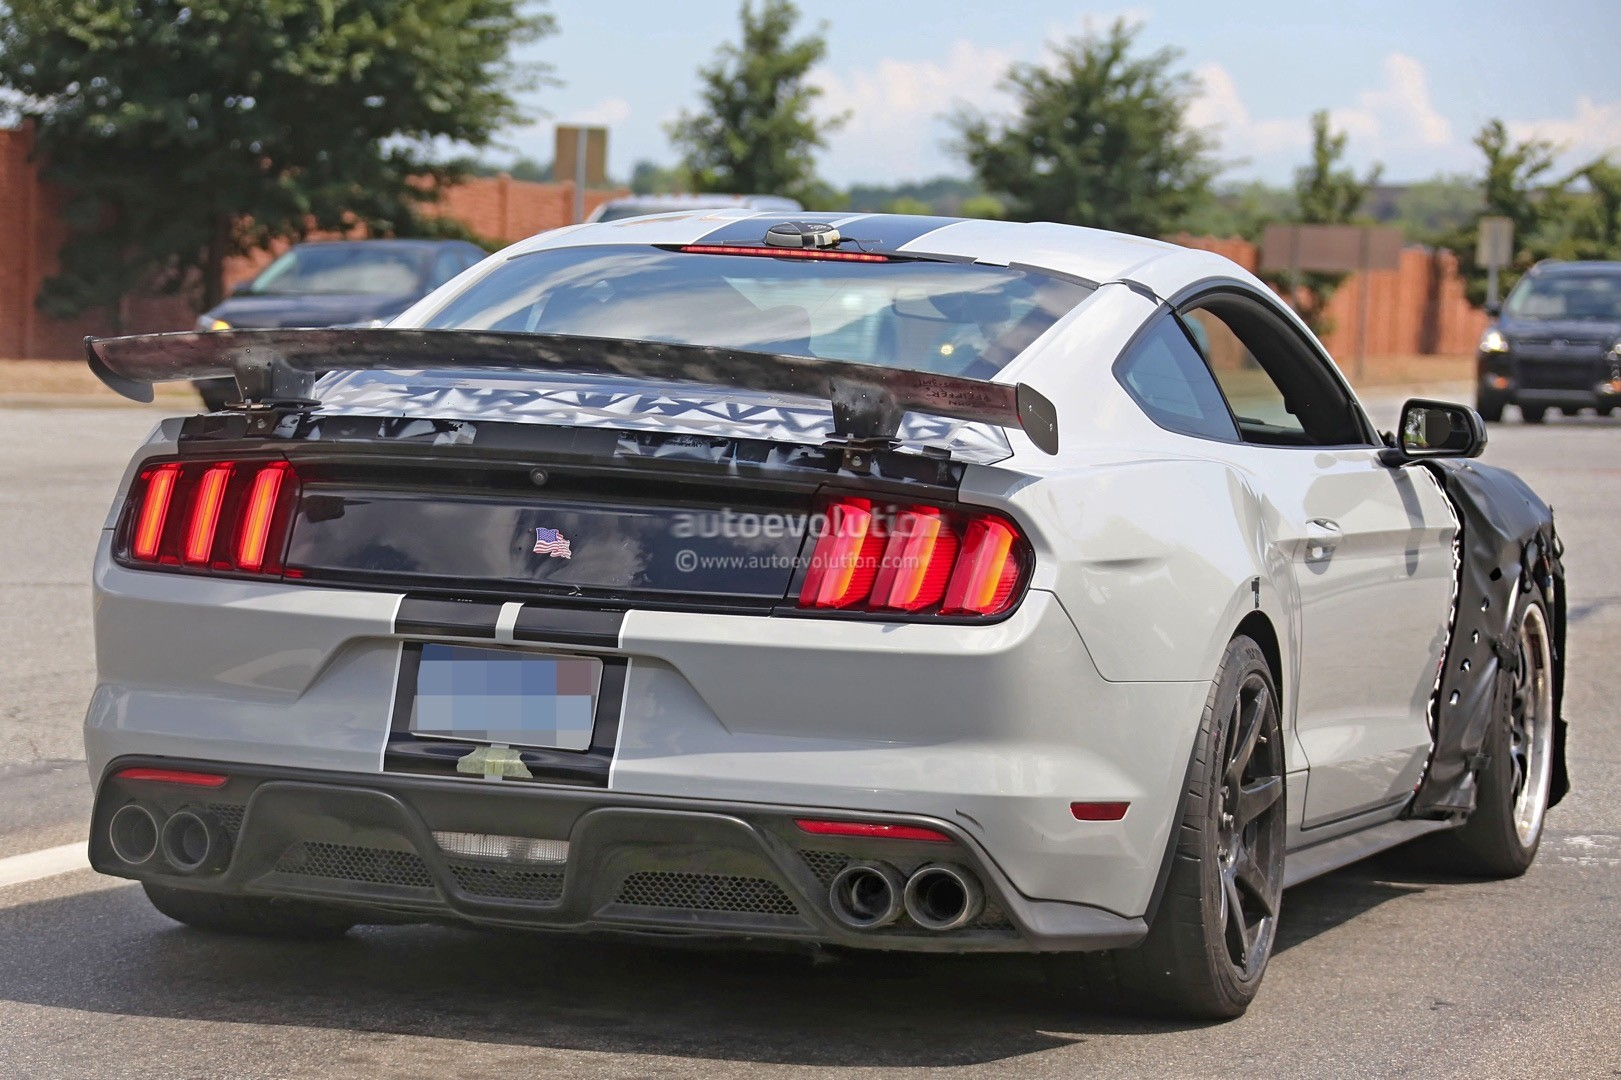 2018 Ford Shelby GT500 Mustang Could Deliver Up To 810 HP - autoevolution